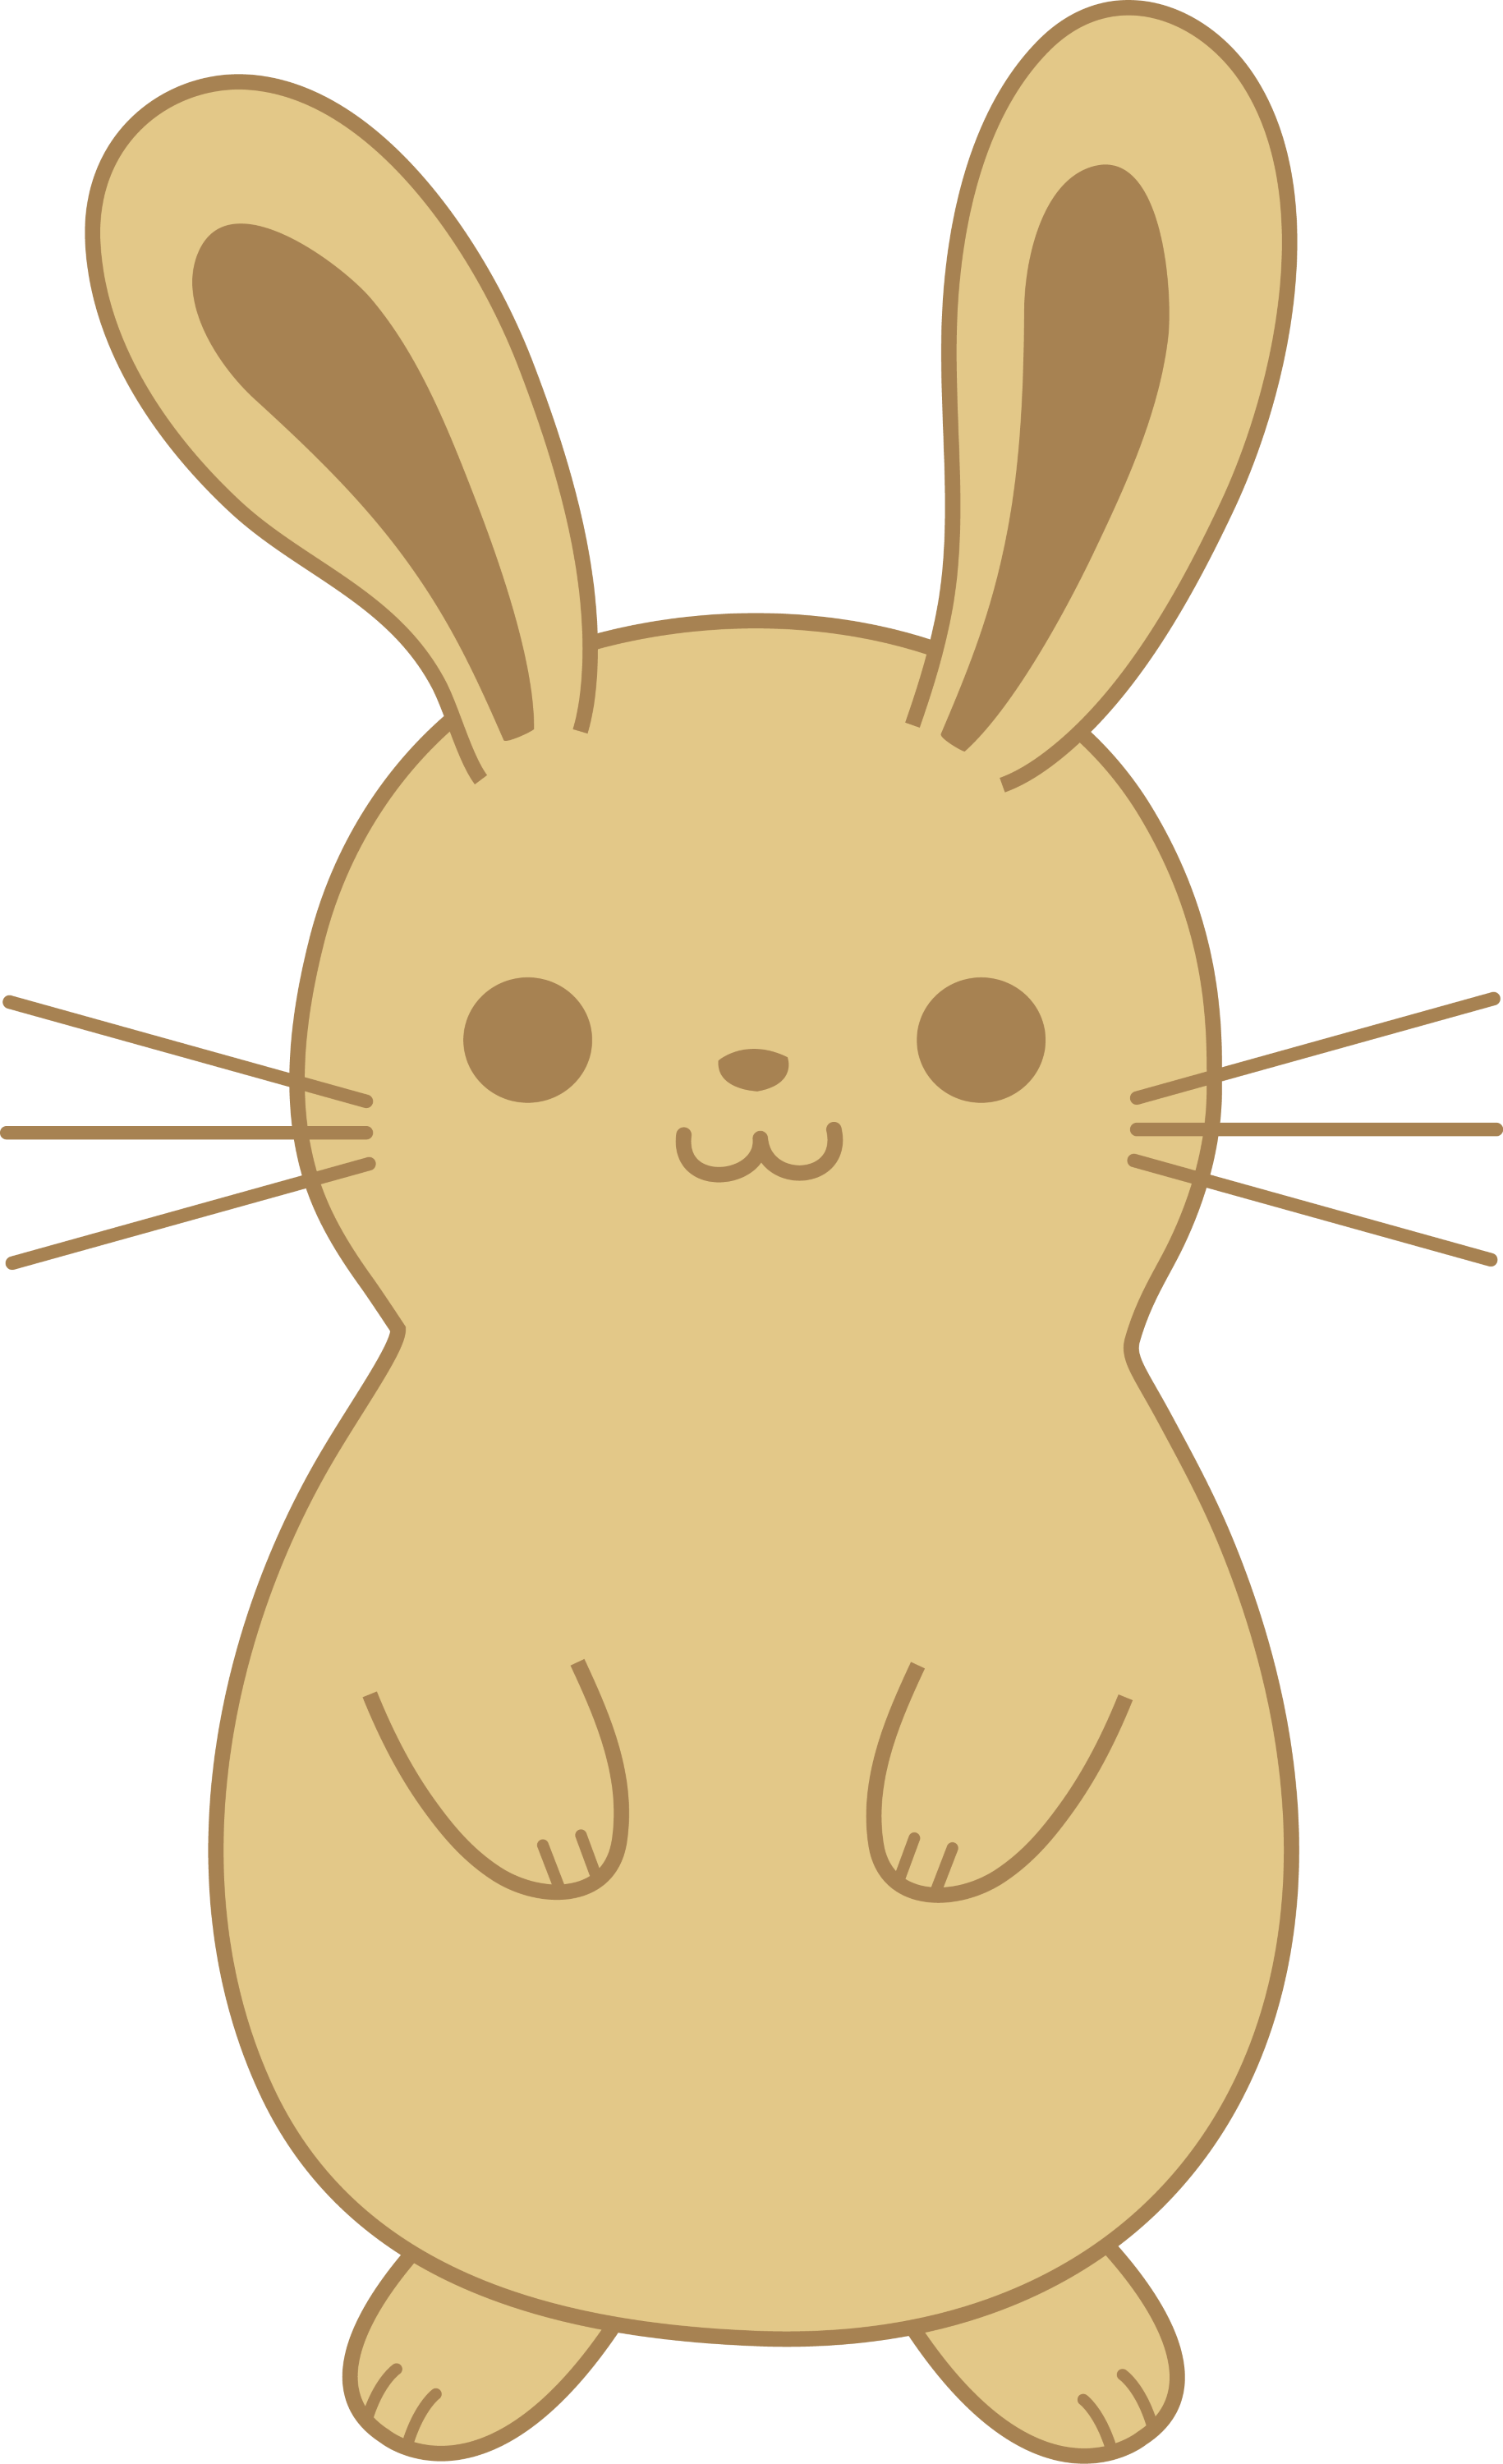 Rabbit clipart - photo#19